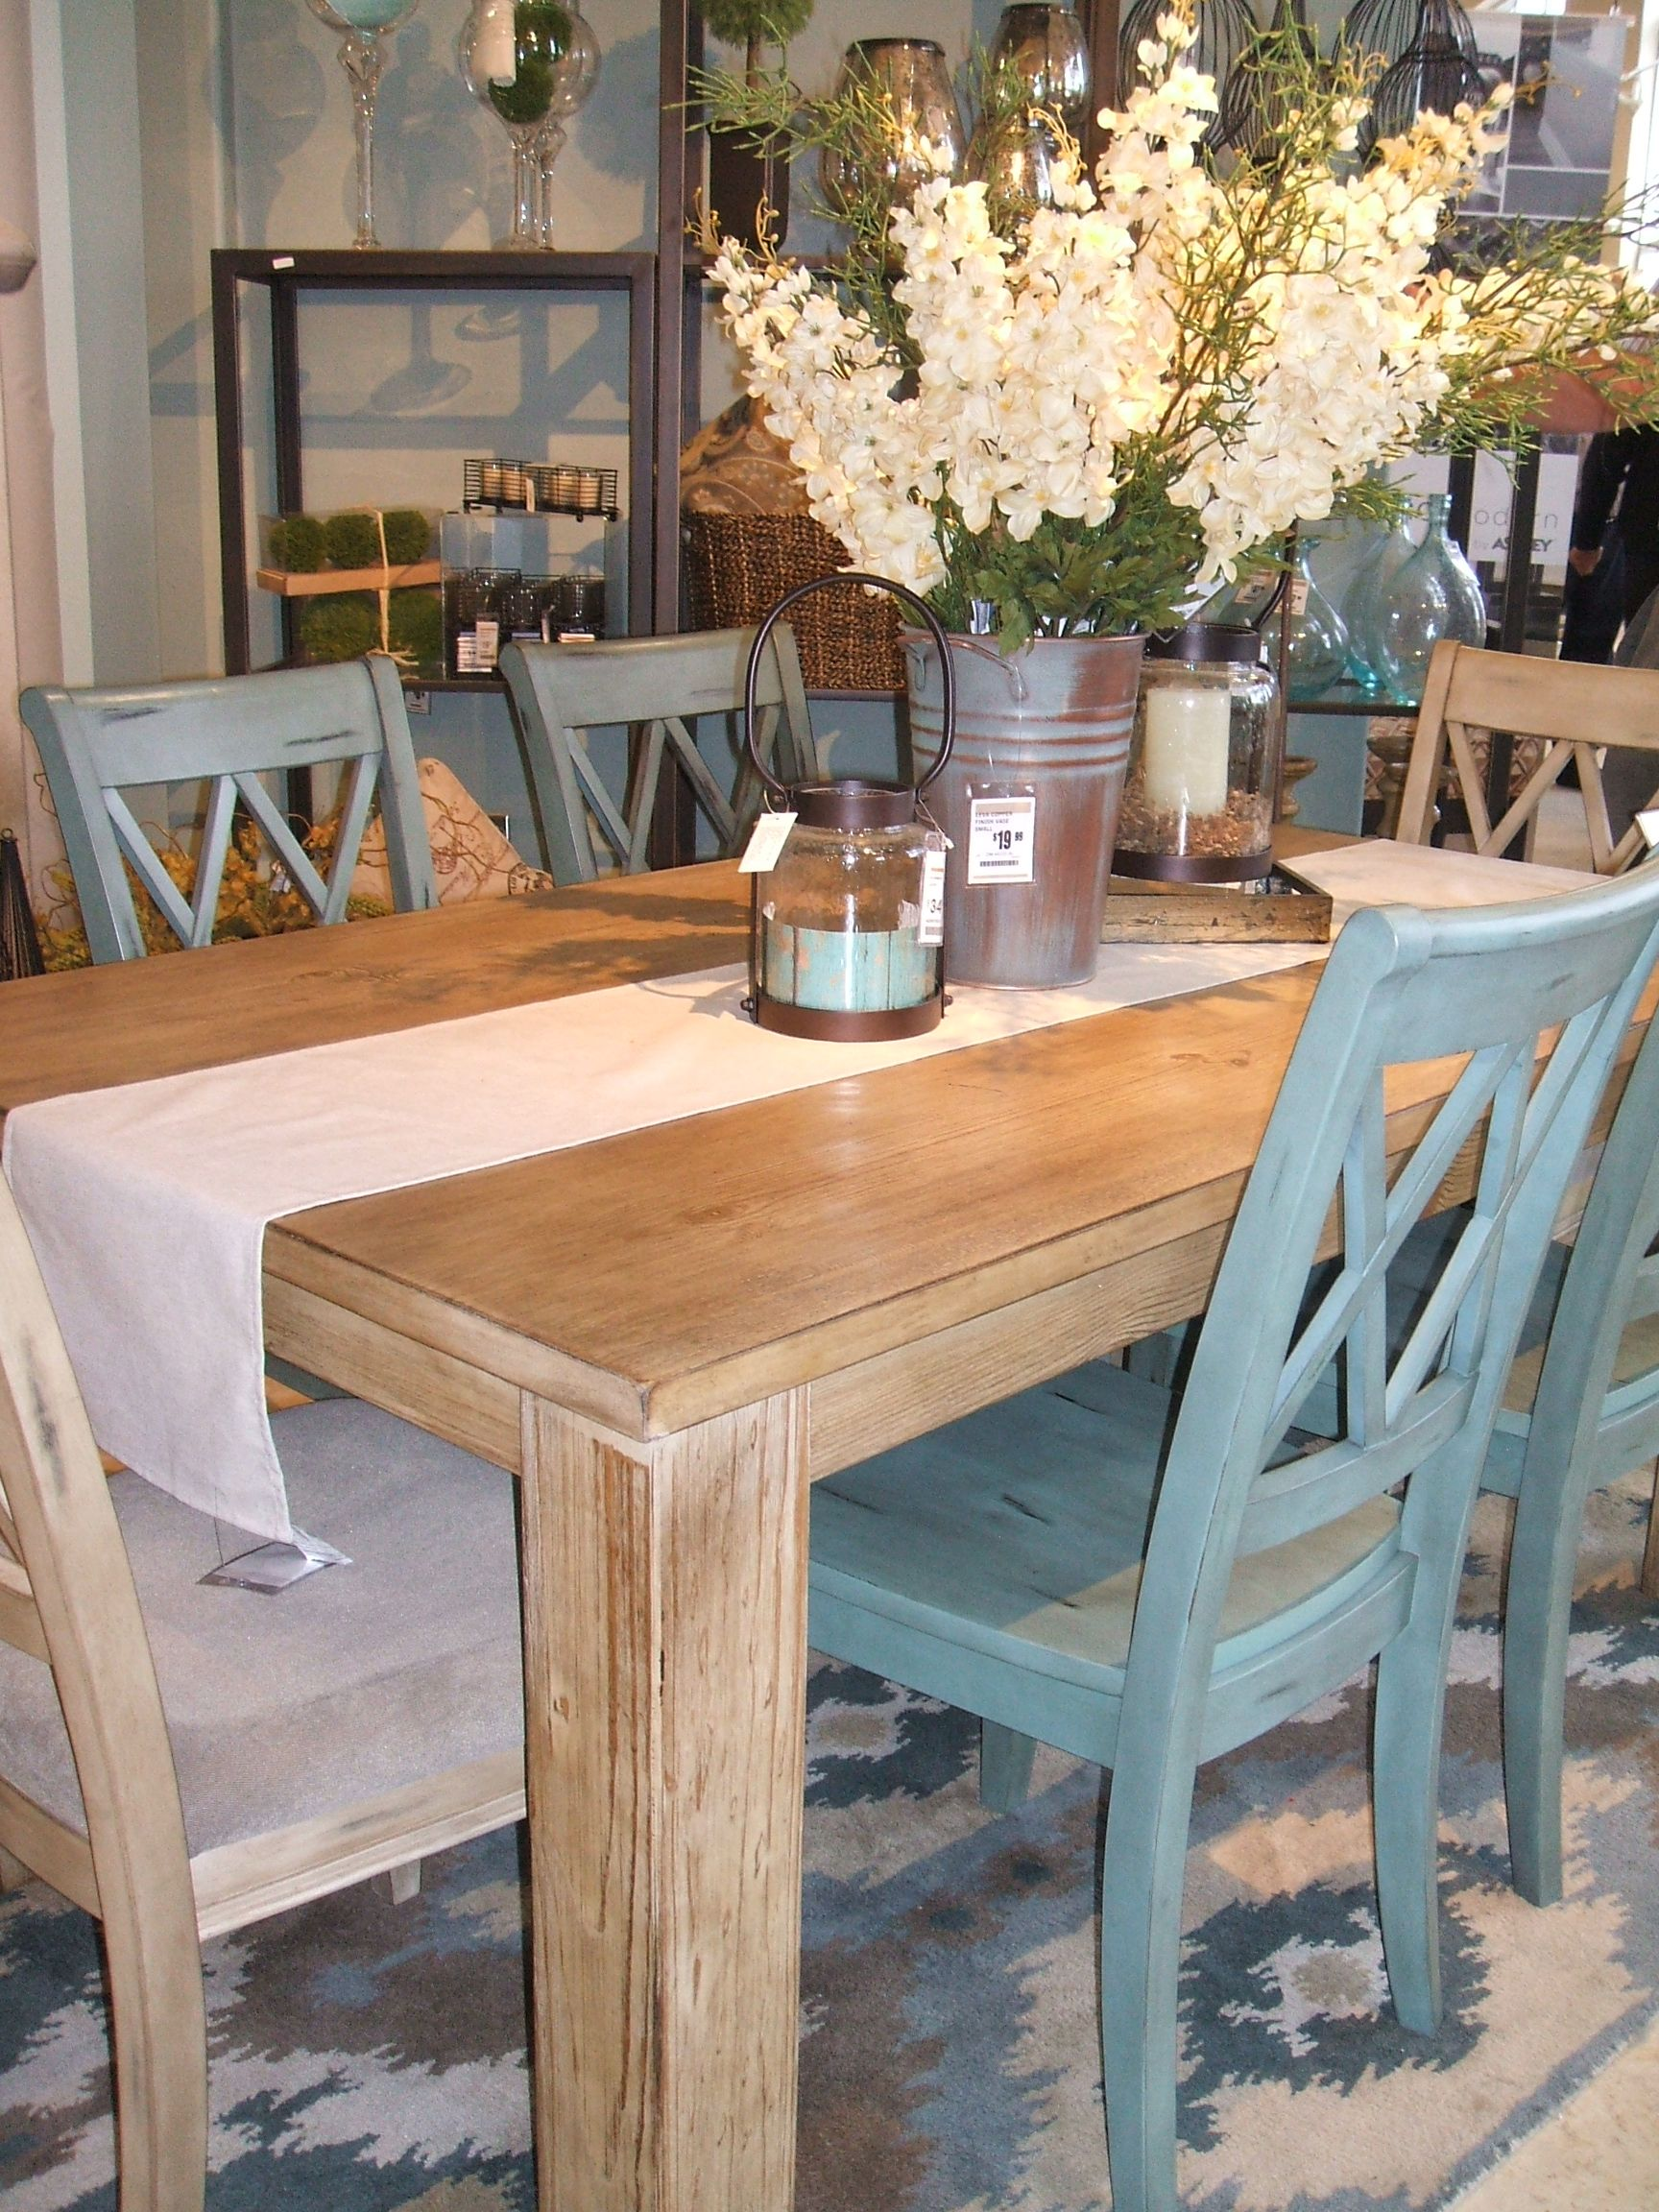 Farmhouse Dining Table And Chairs Love The Table Dressing With The Mix Of Chairs Cool